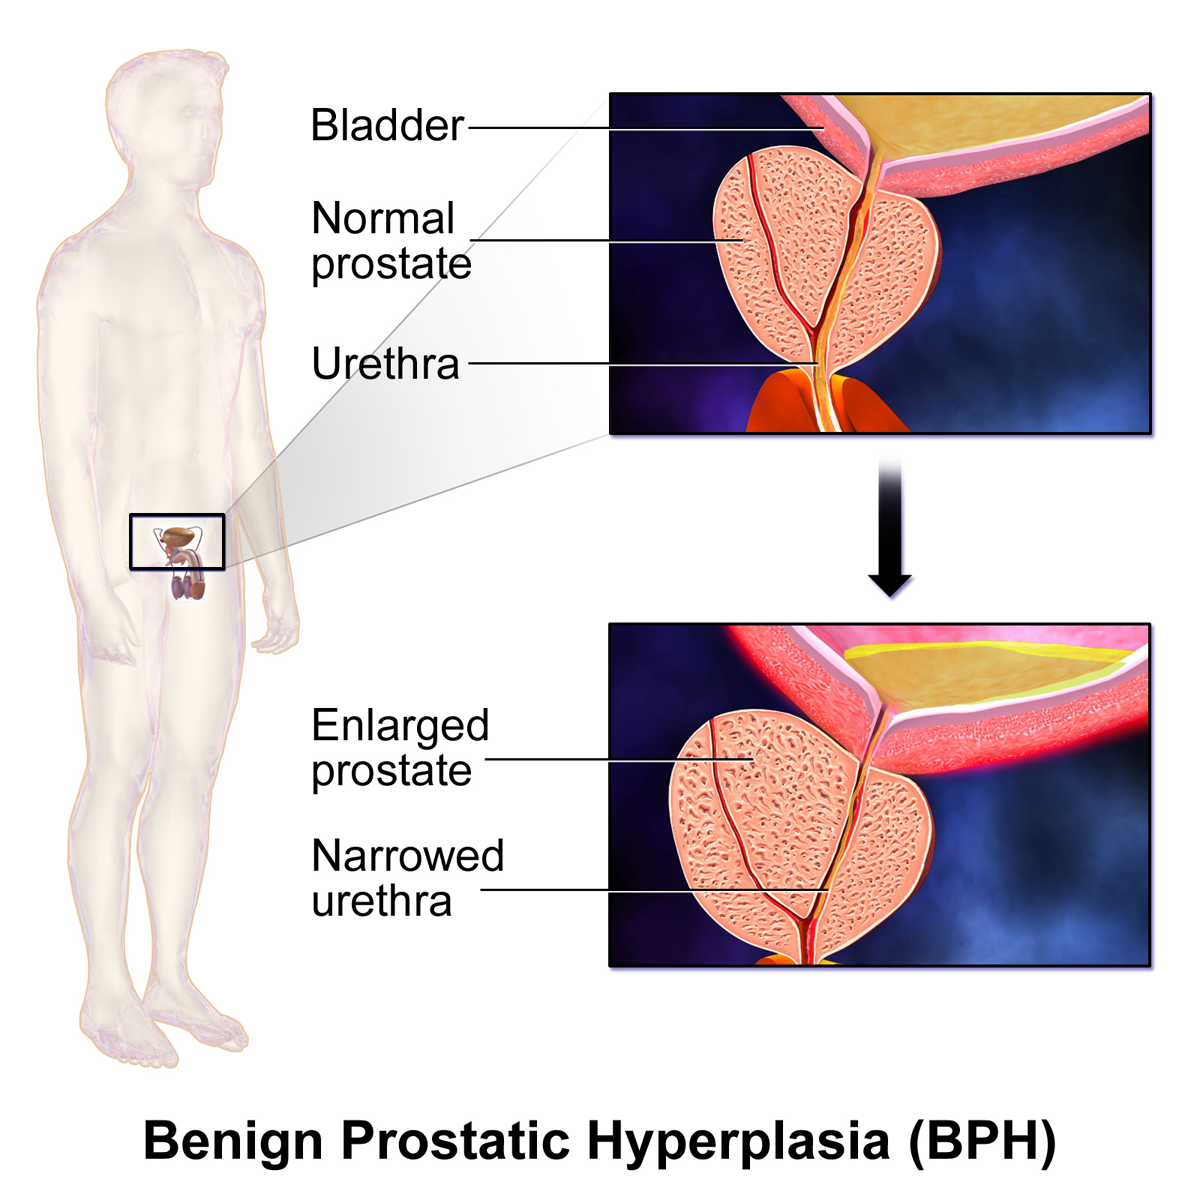 essays on benign prostate hyperplasia Figure 309 benign prostate hyperplasia a and b: axial scans of patients with bph note the heterogeneous echotexture of the inner gland (arrow) representing bph affecting the transition zone.